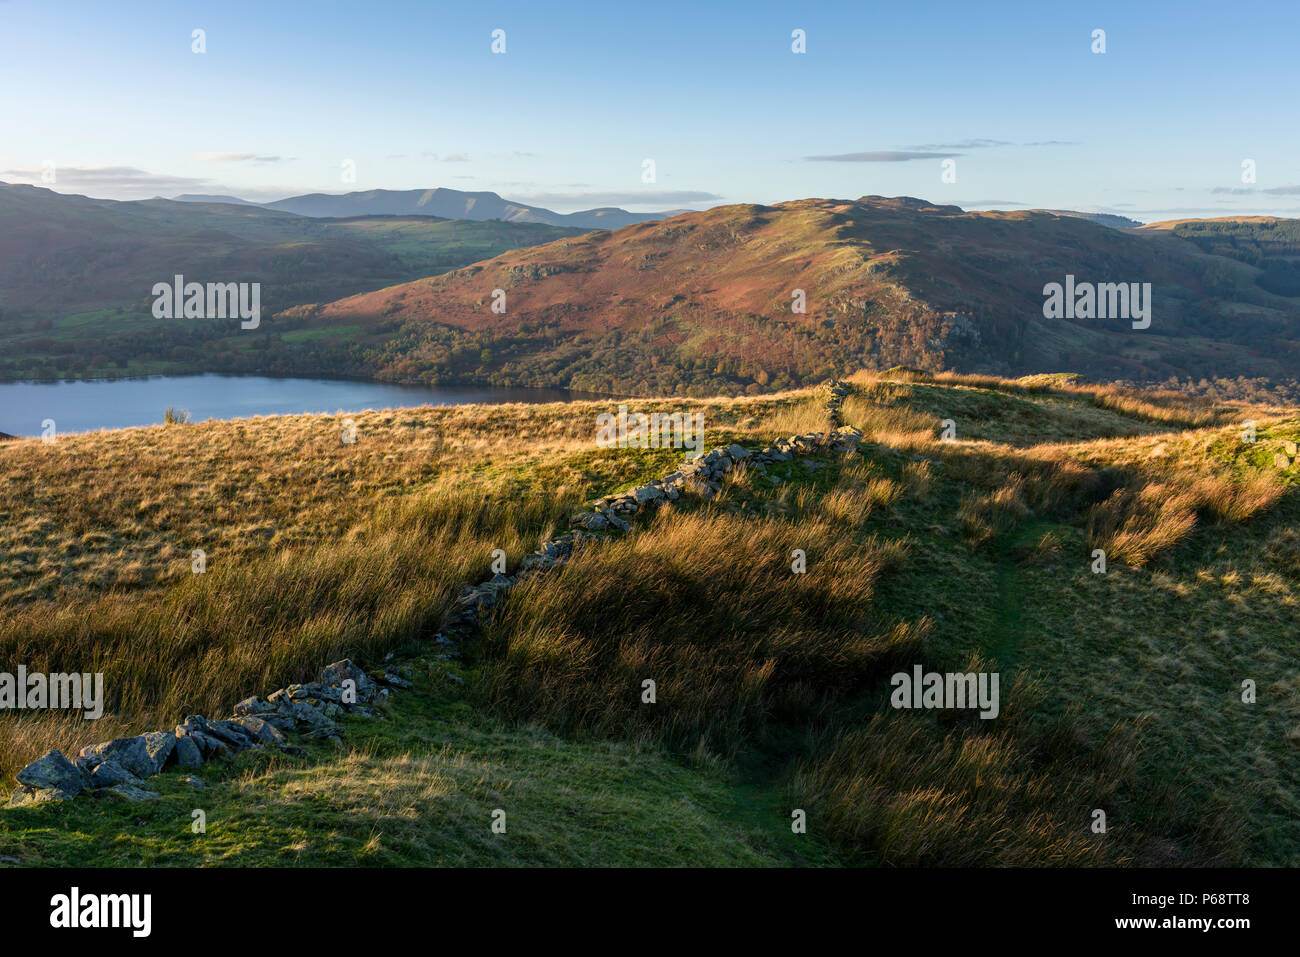 Sleet Fell with Ullswater and Gowbarrow Fell beyond in the Lake District National Park, Cumbria, England. - Stock Image